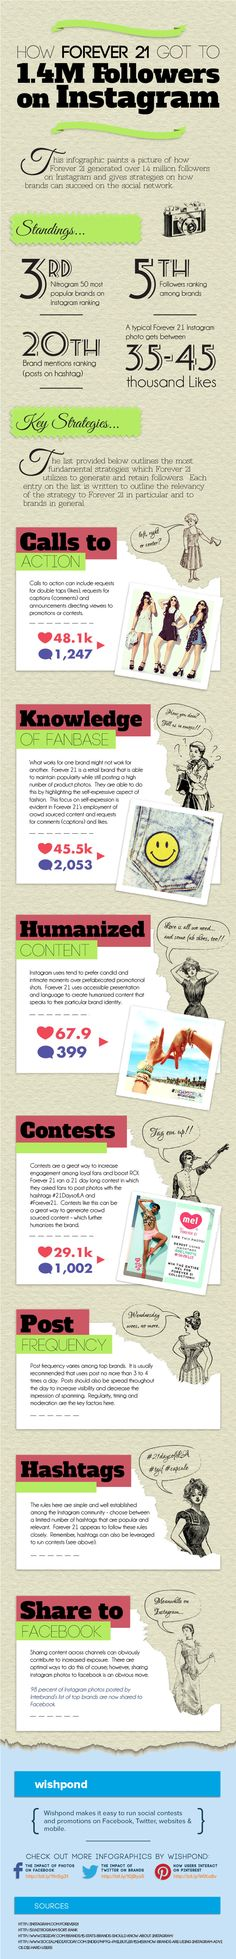 How @FOREVER™ 21 Got to 1.4 Million Followers on Instagram #Infographic